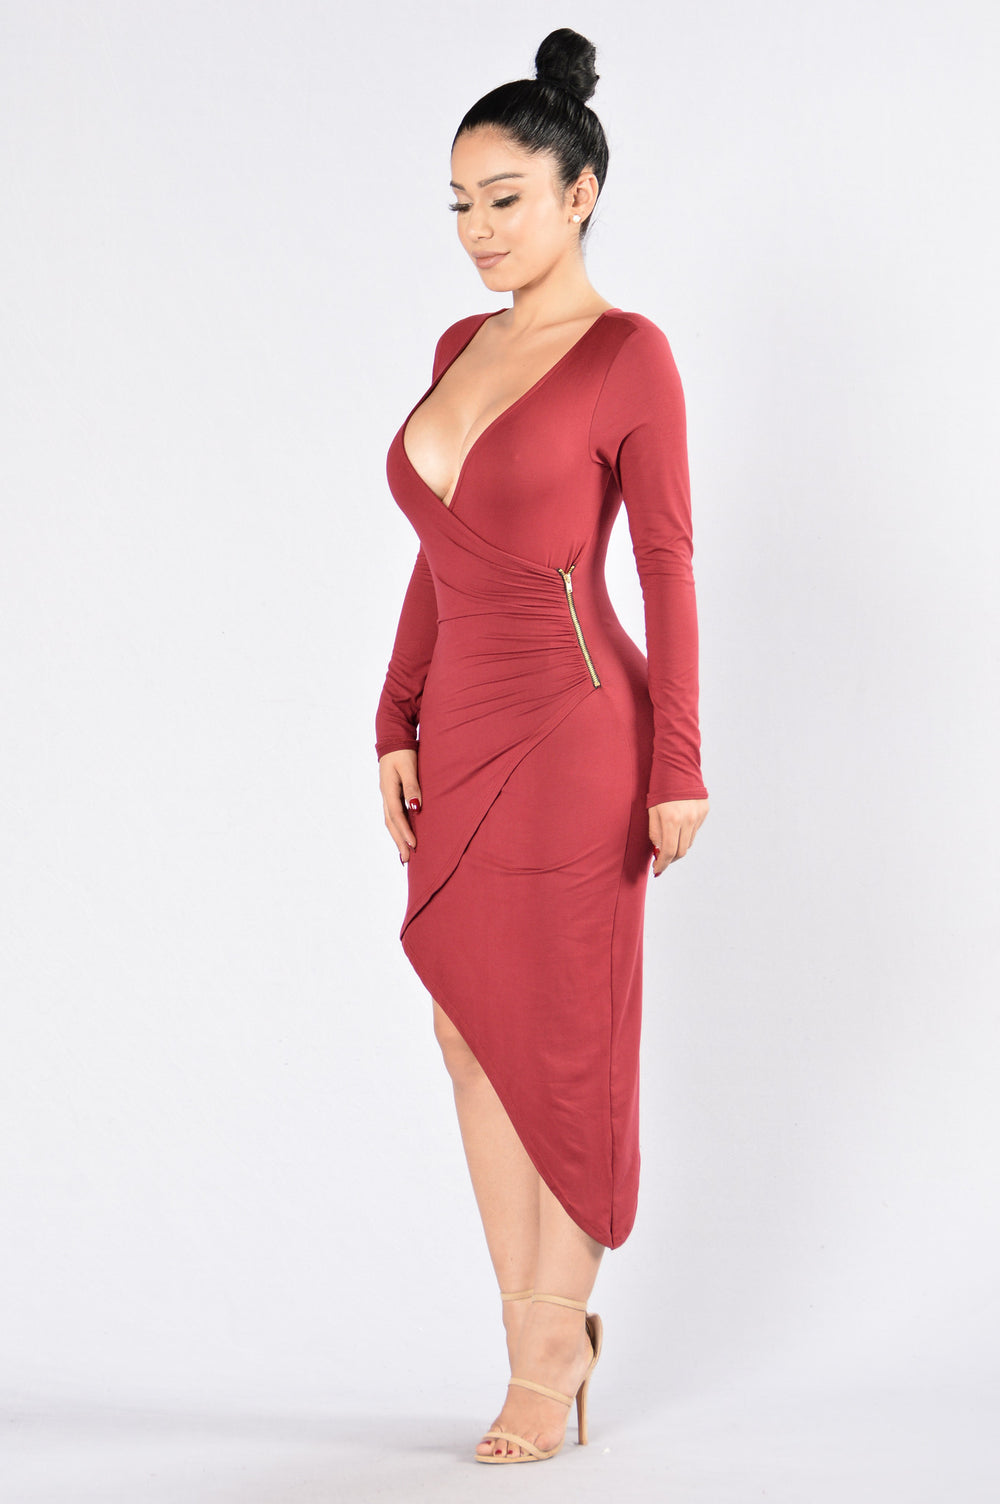 Whirlwind Romance Dress - Wine